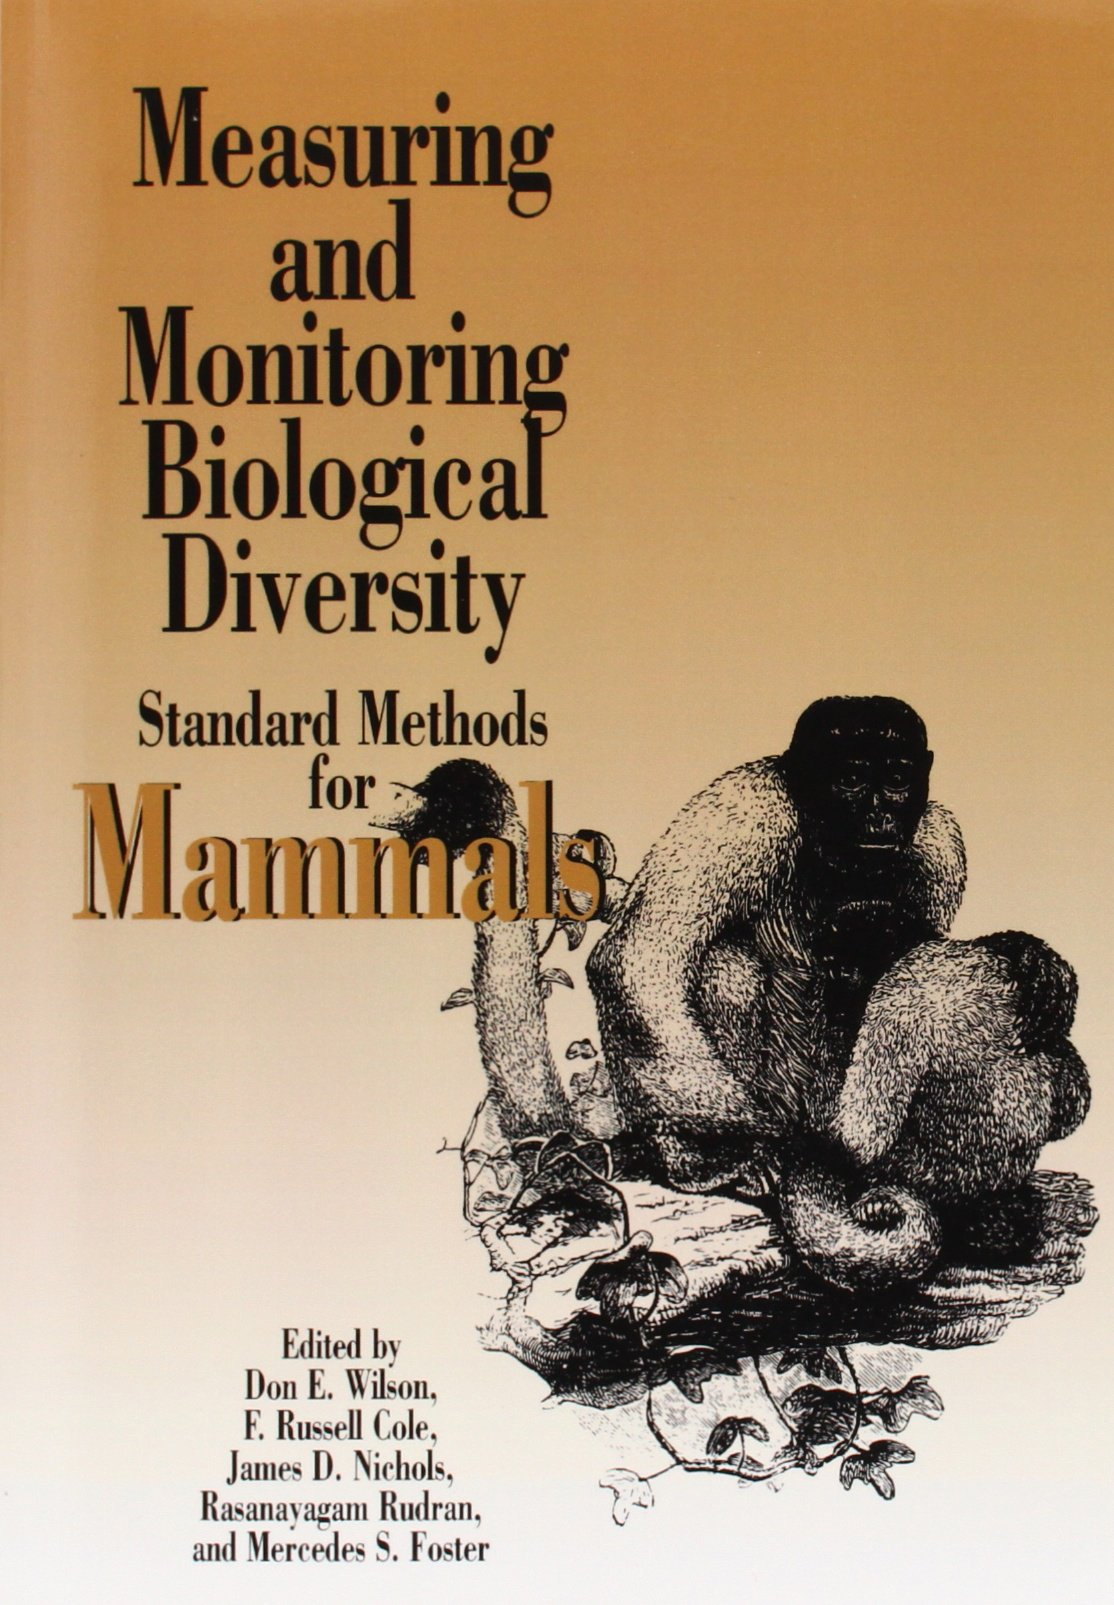 Measuring and monitoring biological diversity standard methods for measuring and monitoring biological diversity standard methods for mammals biodiversity handbook don e wilson f russell cole james d nichils fandeluxe Image collections